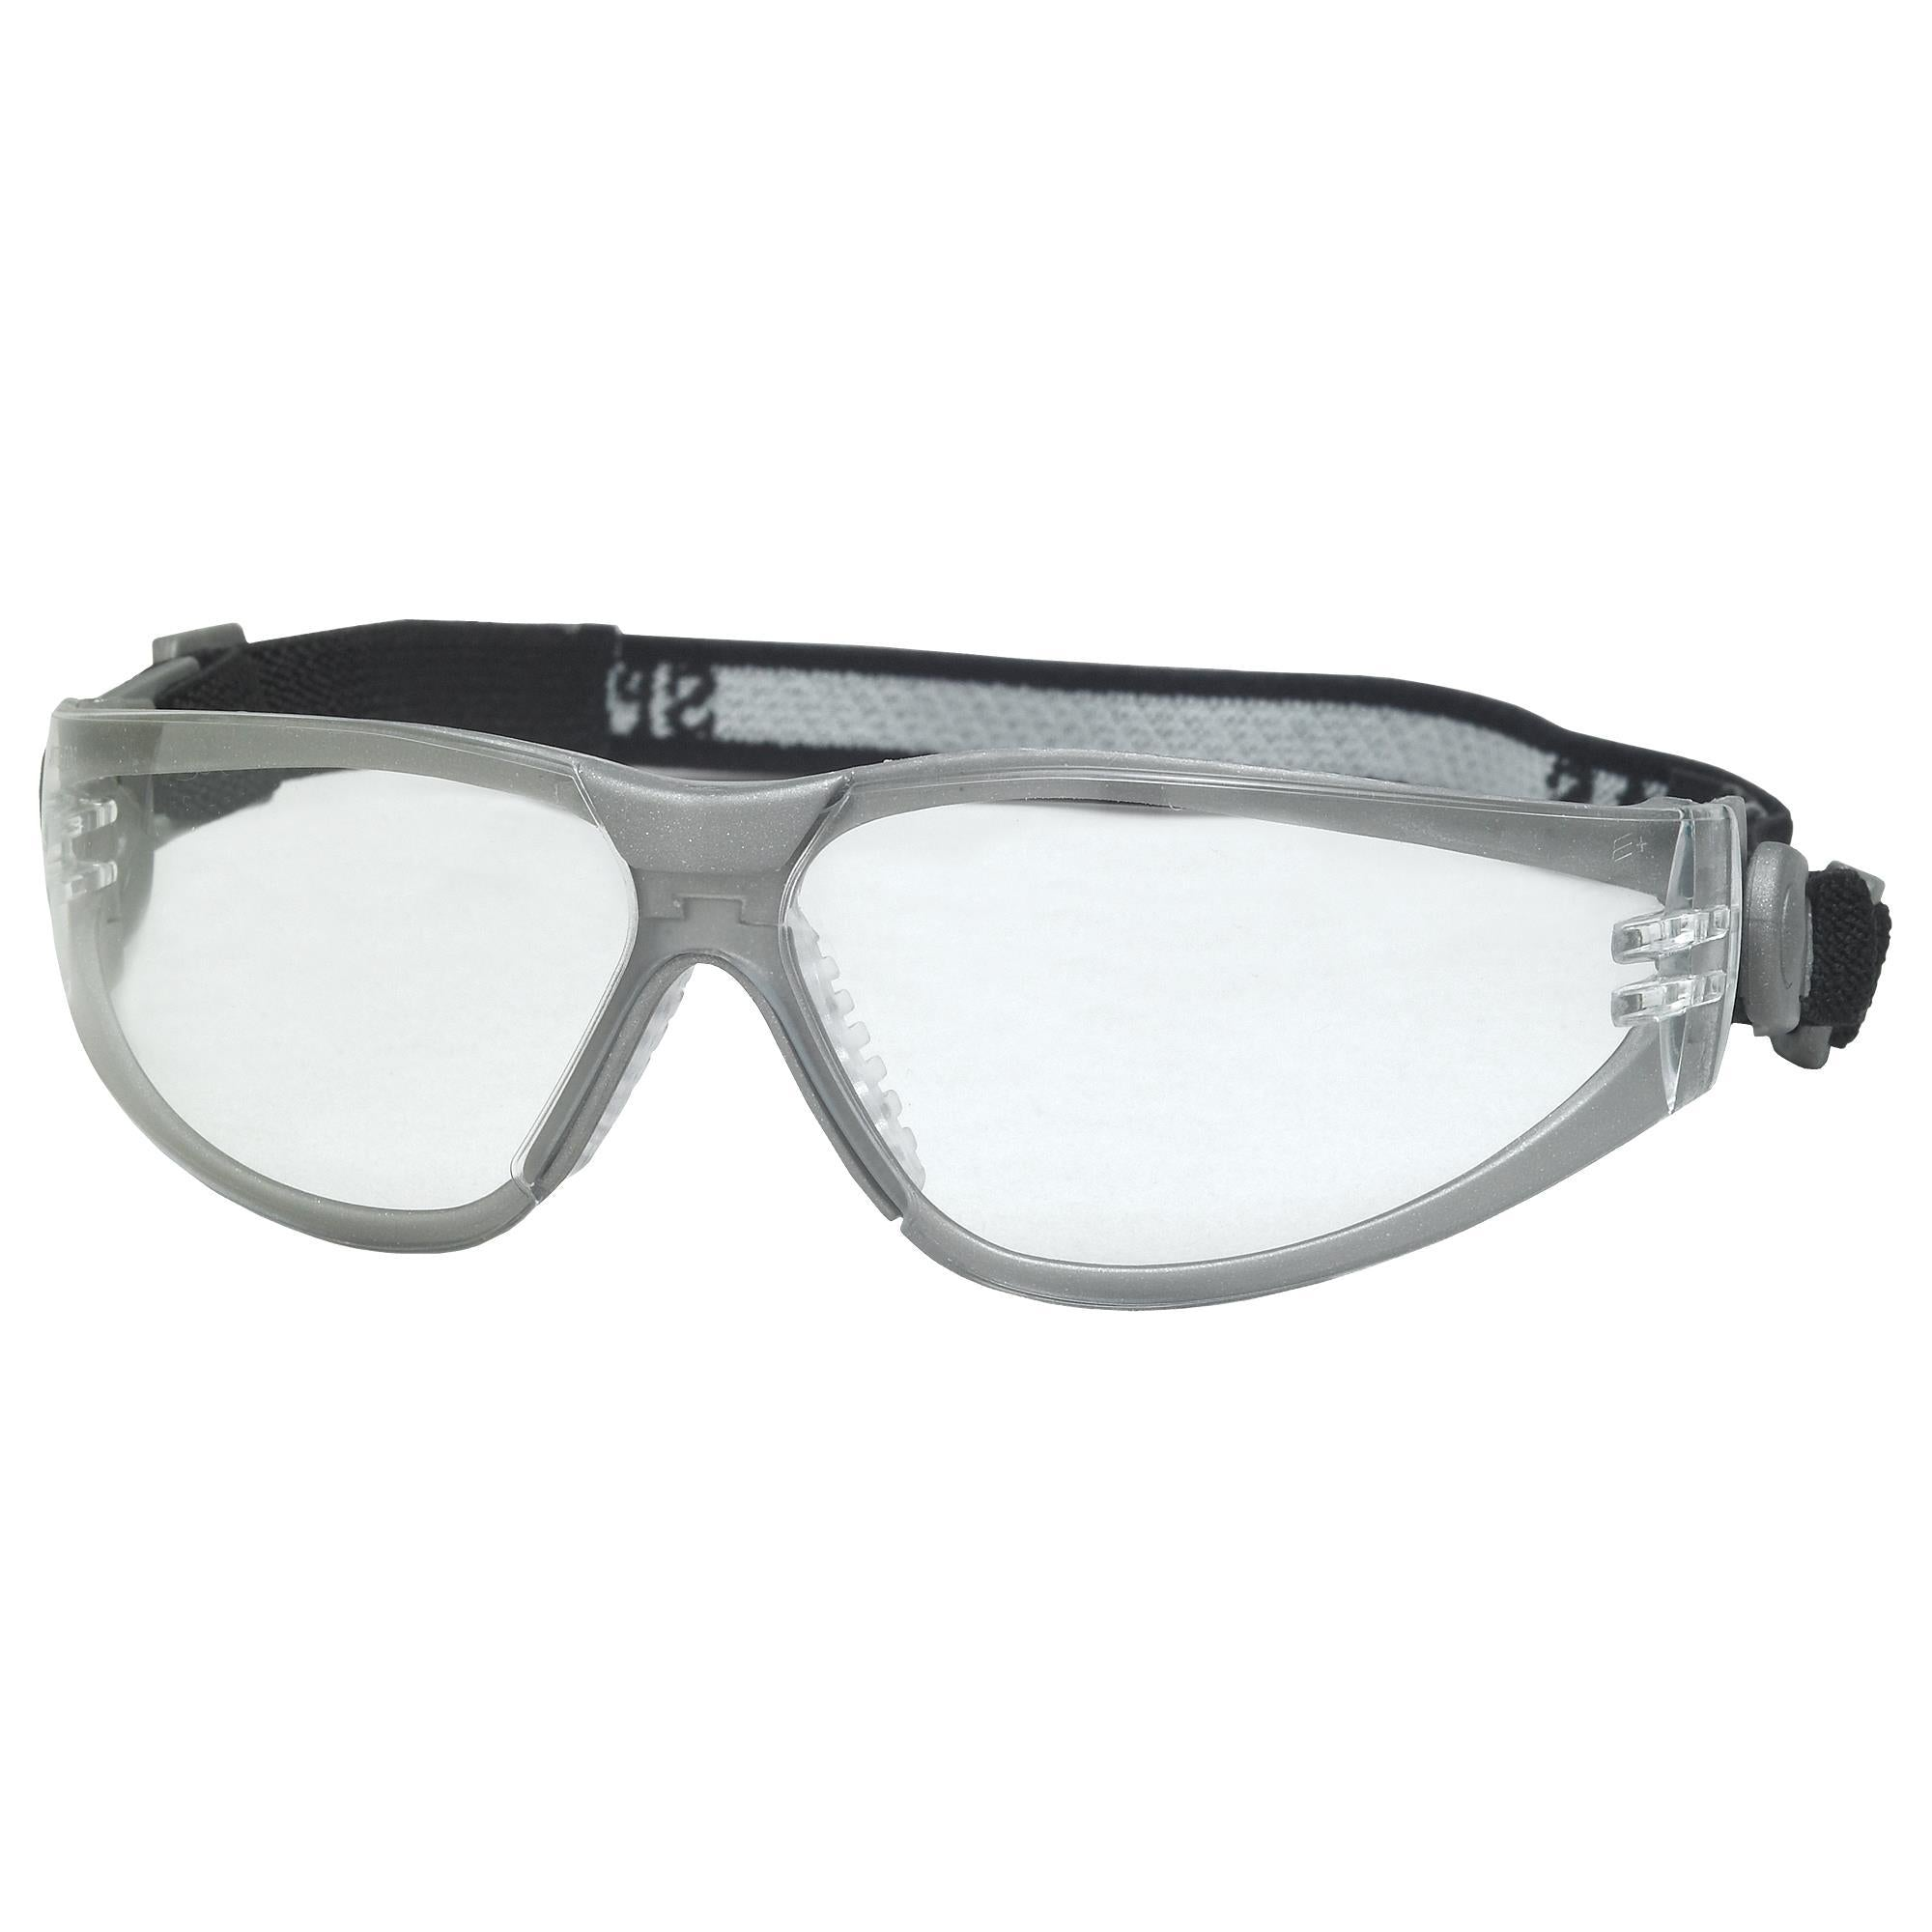 Sport BOAS® Safety Glasses with Anti-Fog Lens 1PC